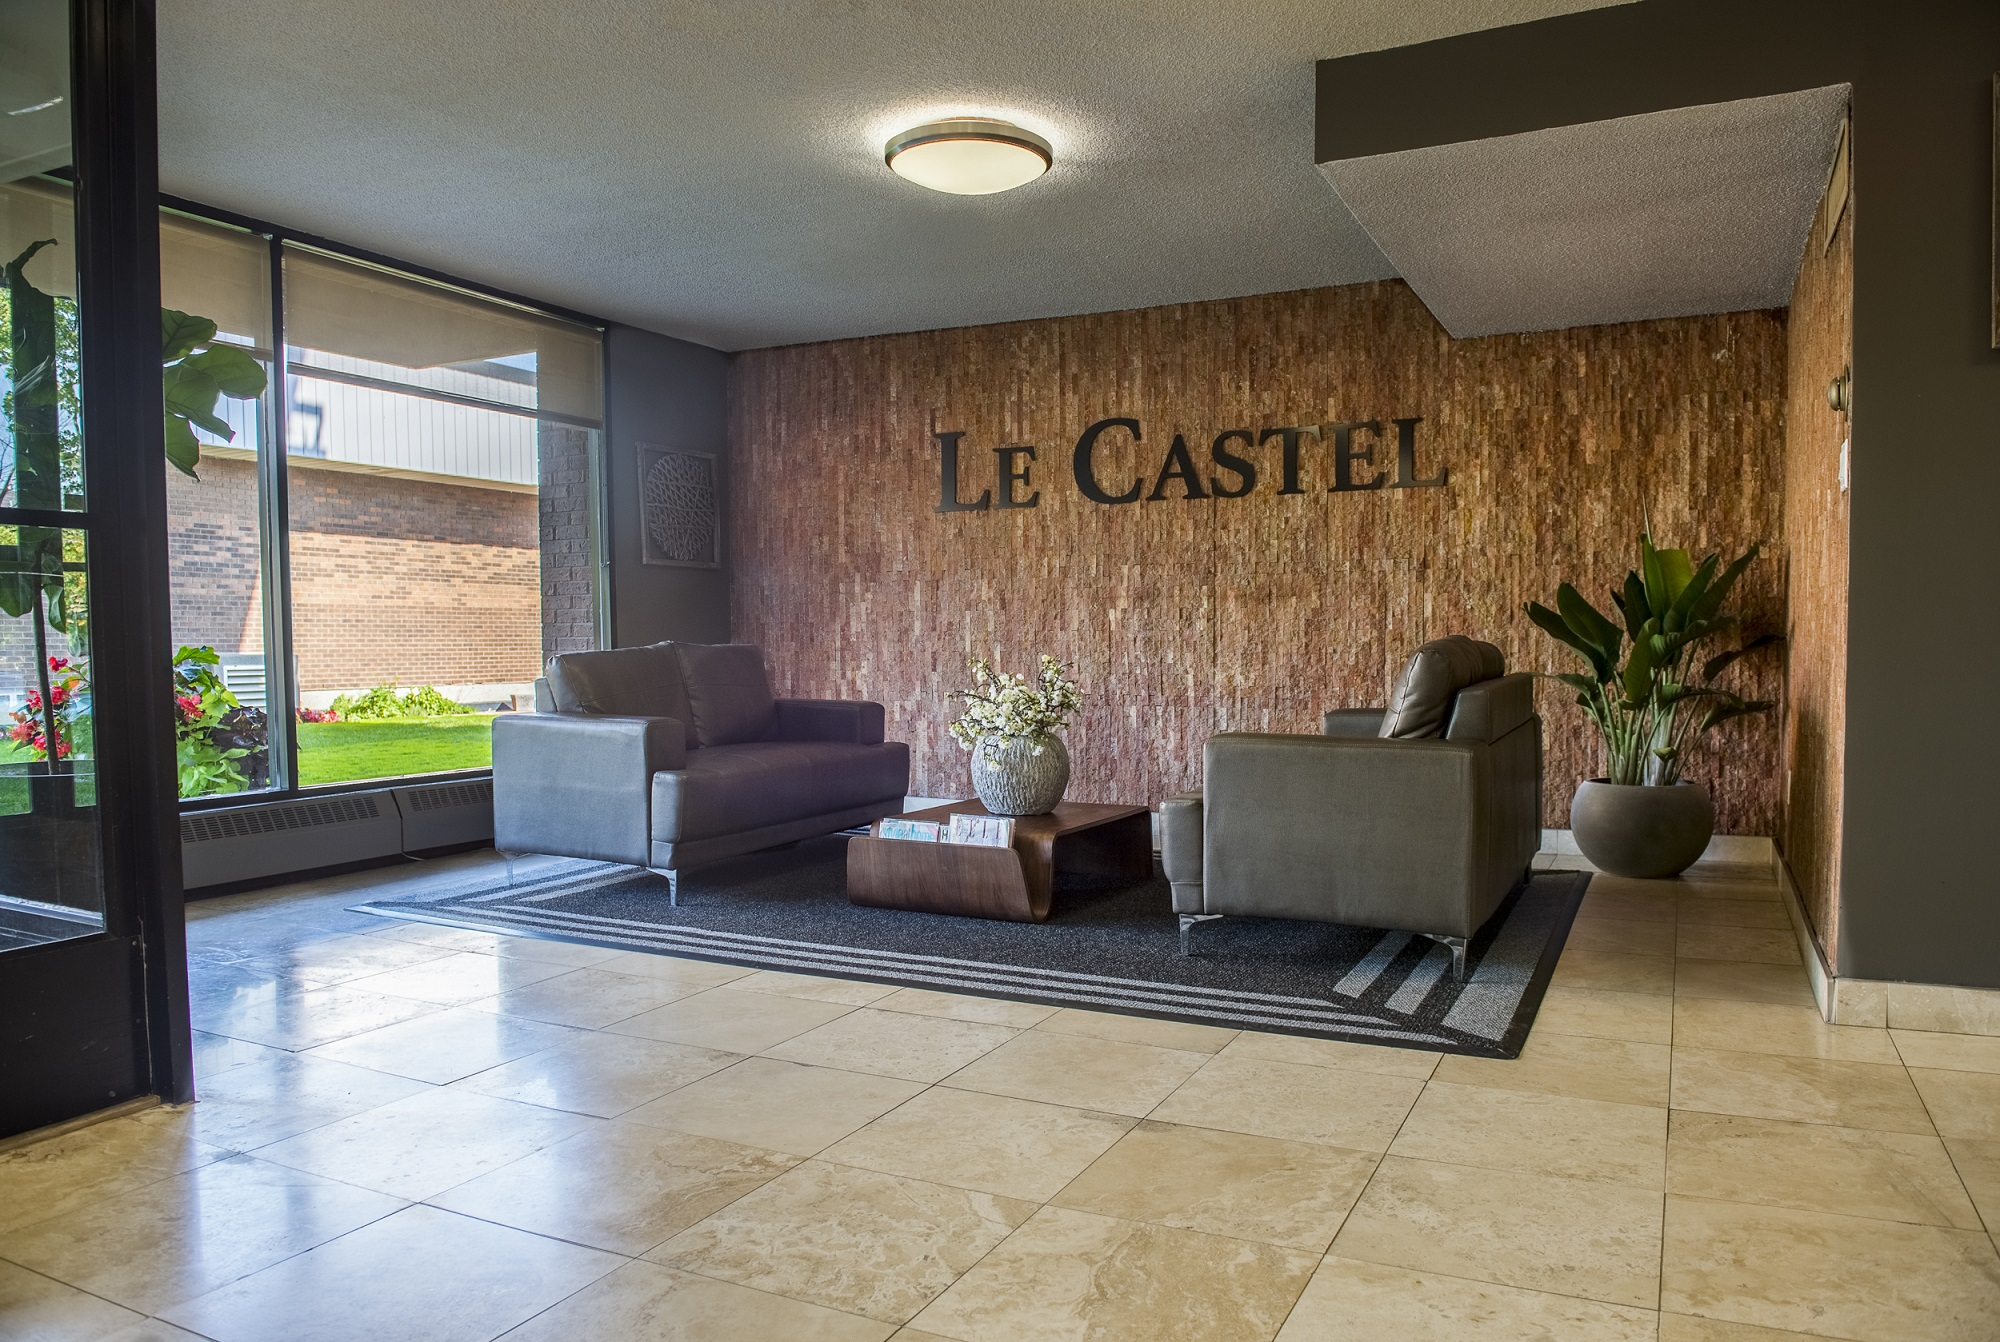 Studio / Bachelor Apartments for rent in Laval at Le Castel de Laval - Photo 03 - RentQuebecApartments – L6085